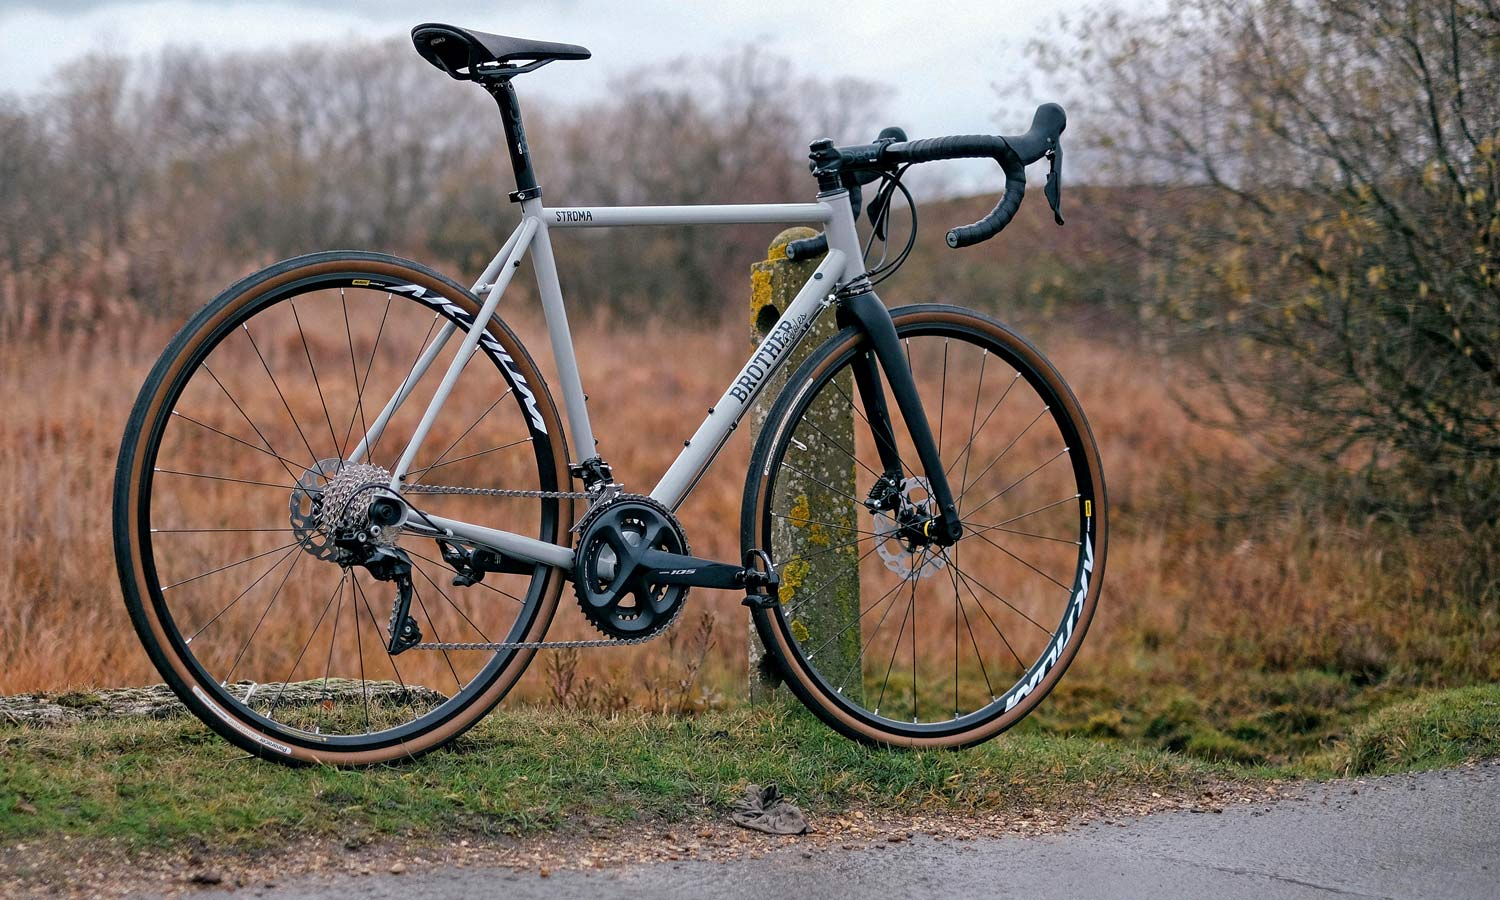 https://www.brothercycles.com/shop/frames/stroma/